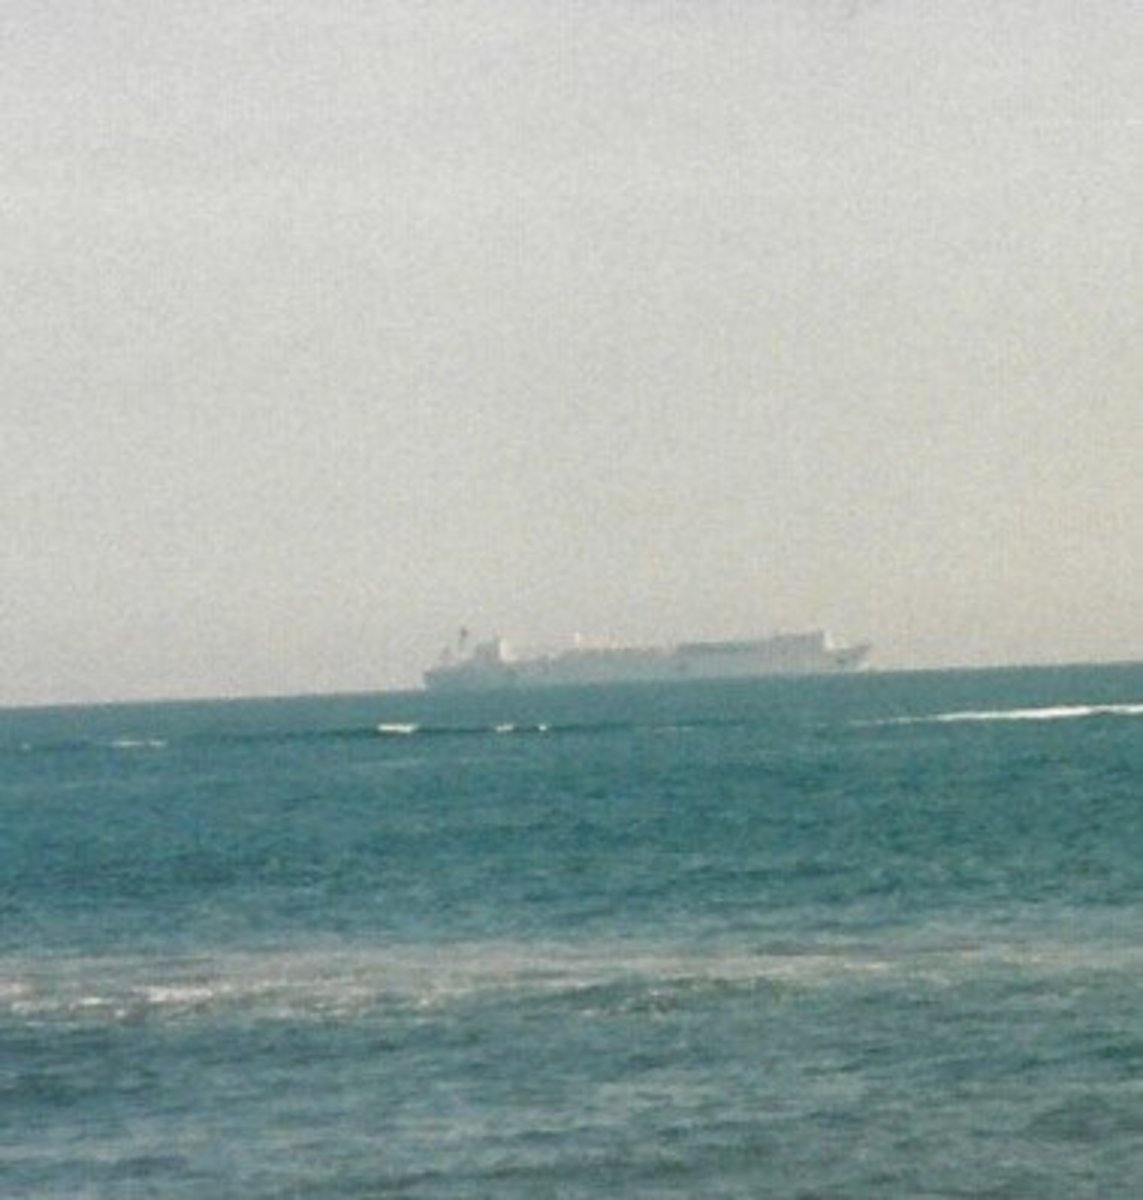 A ship off the coast of Virginia Beach.